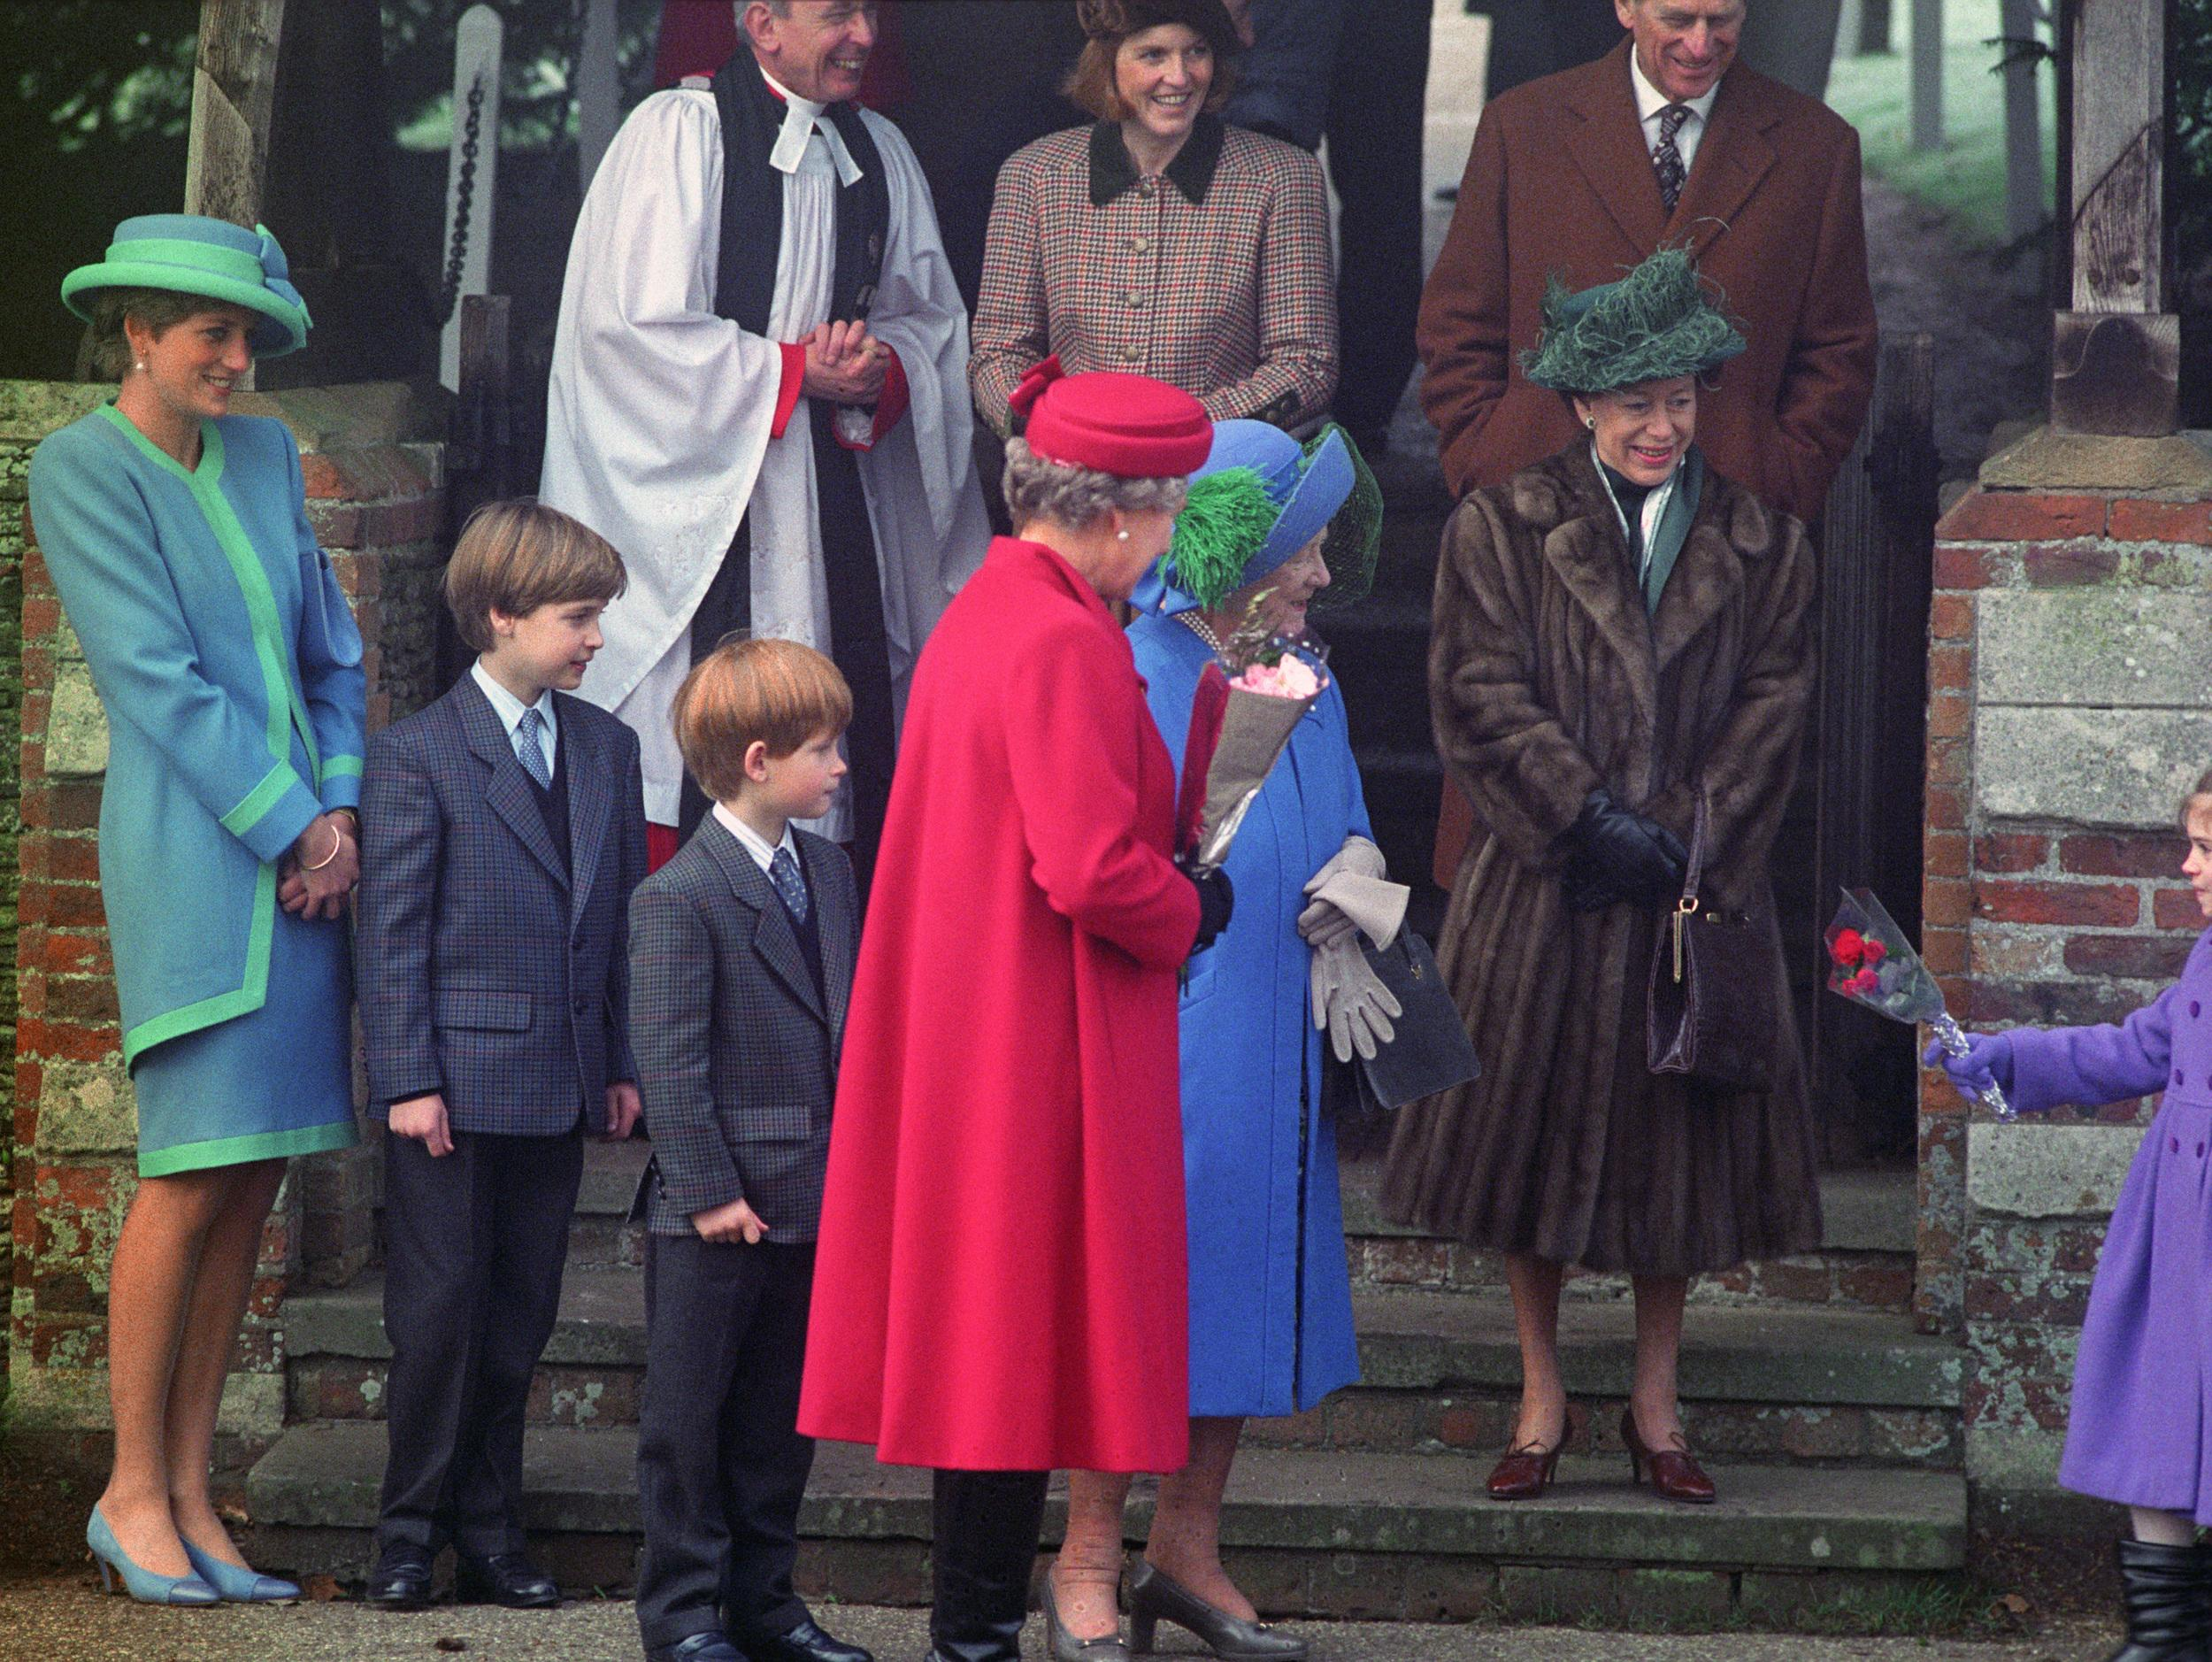 <p>An adorable Prince William and Prince Harry can be seen standing beside their mother, Princess Diana, as a little girl gives flowers to the Queen Mother in 1991.</p>